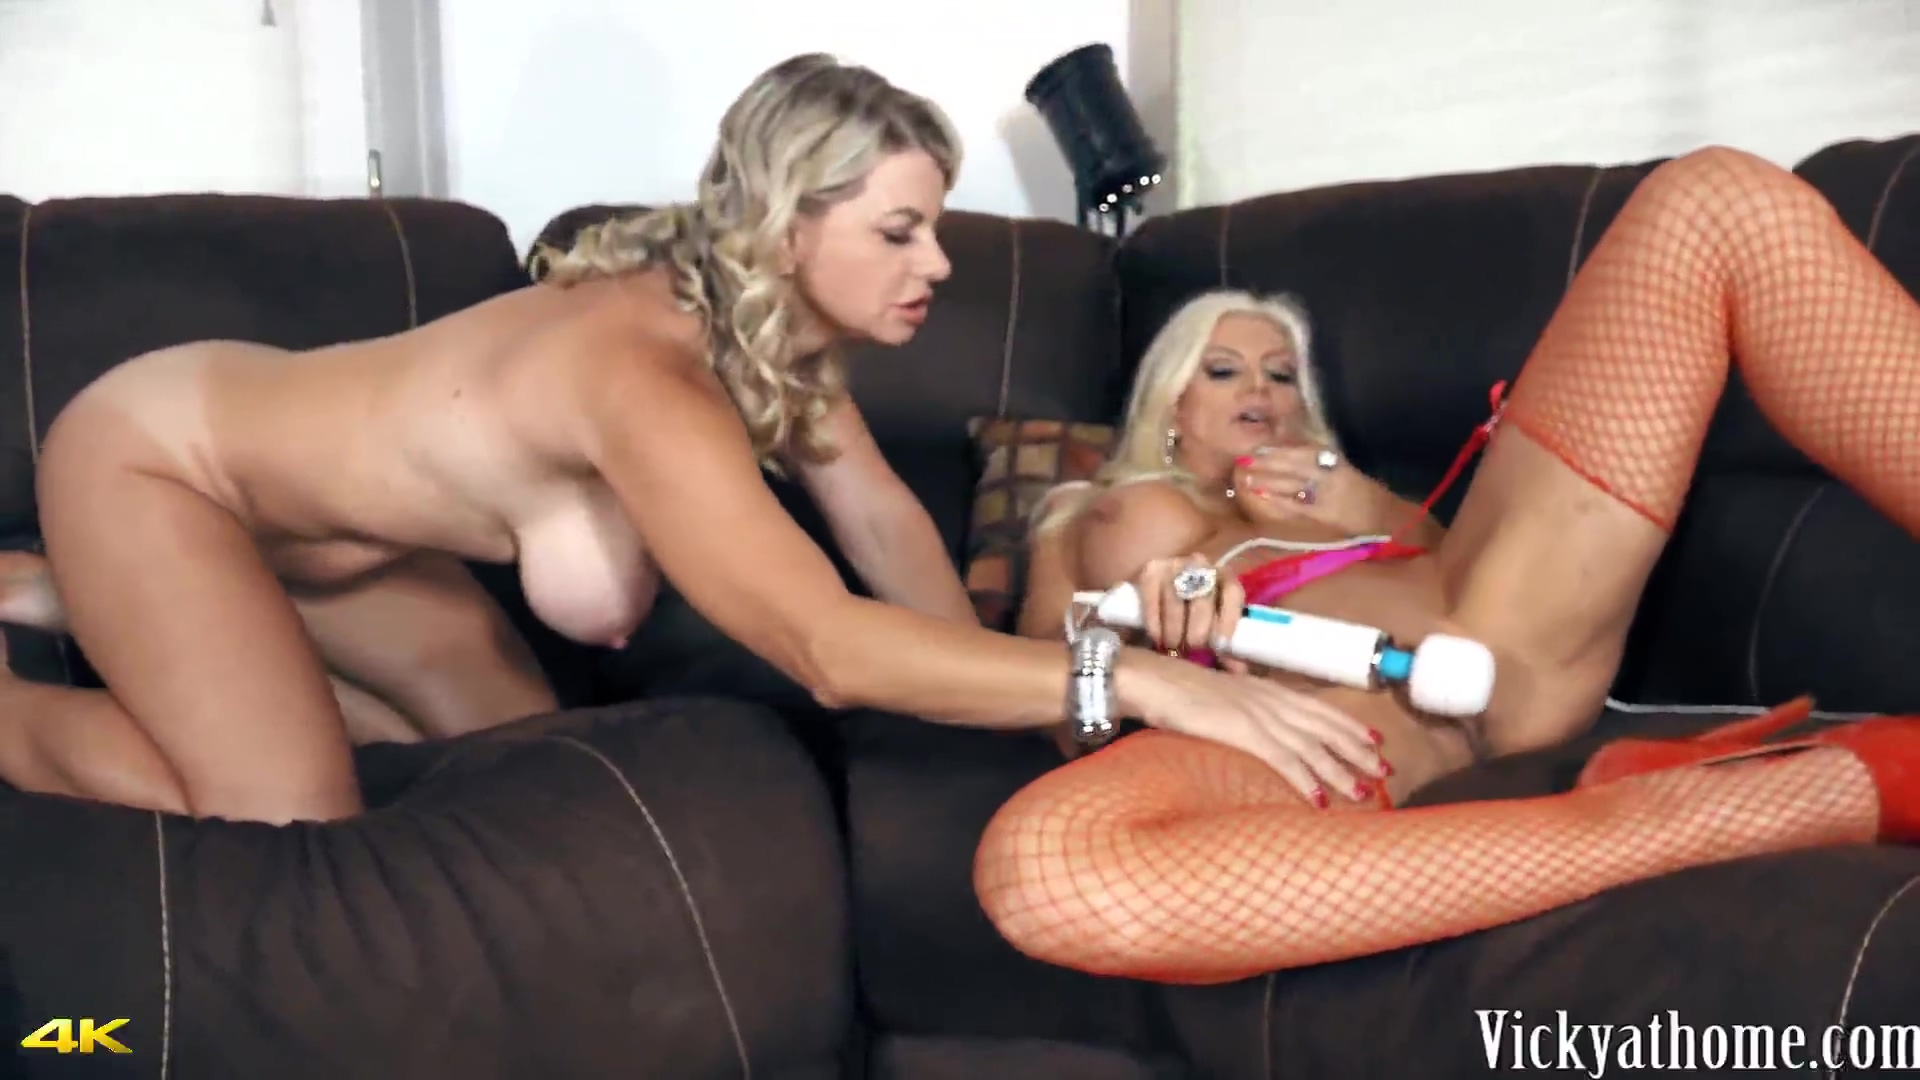 Jenna Jameson And Brittany Andrews - My Sugar Daddy Wont Fuck Me!